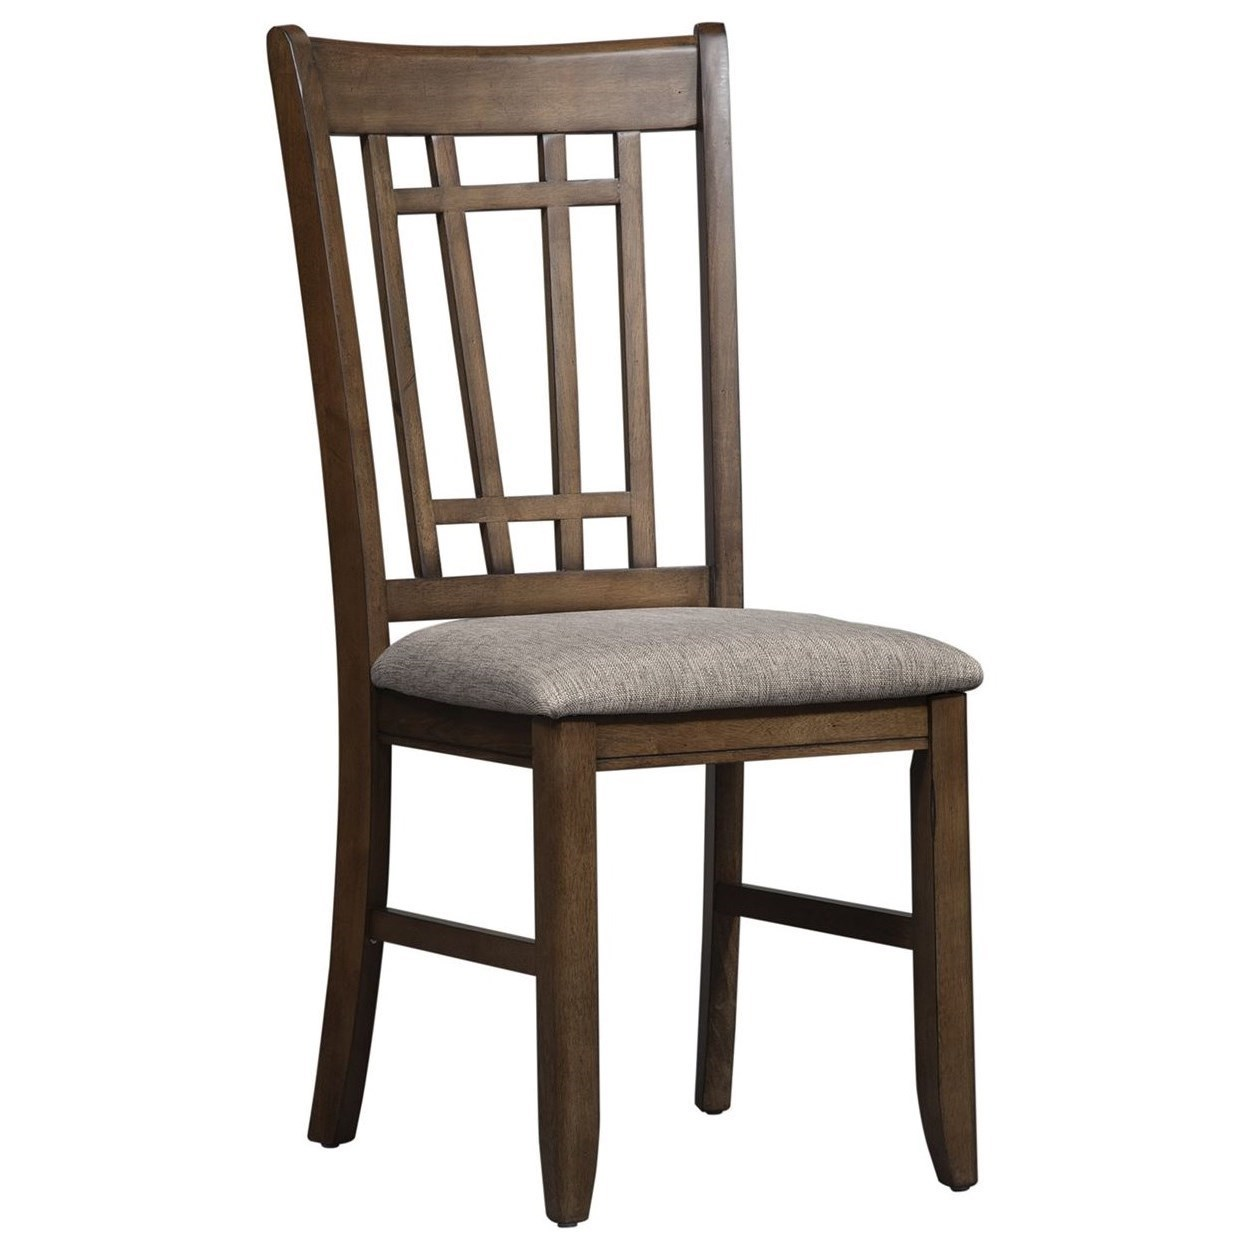 Mission Lattice Back Side Chair with Upholstered Seat